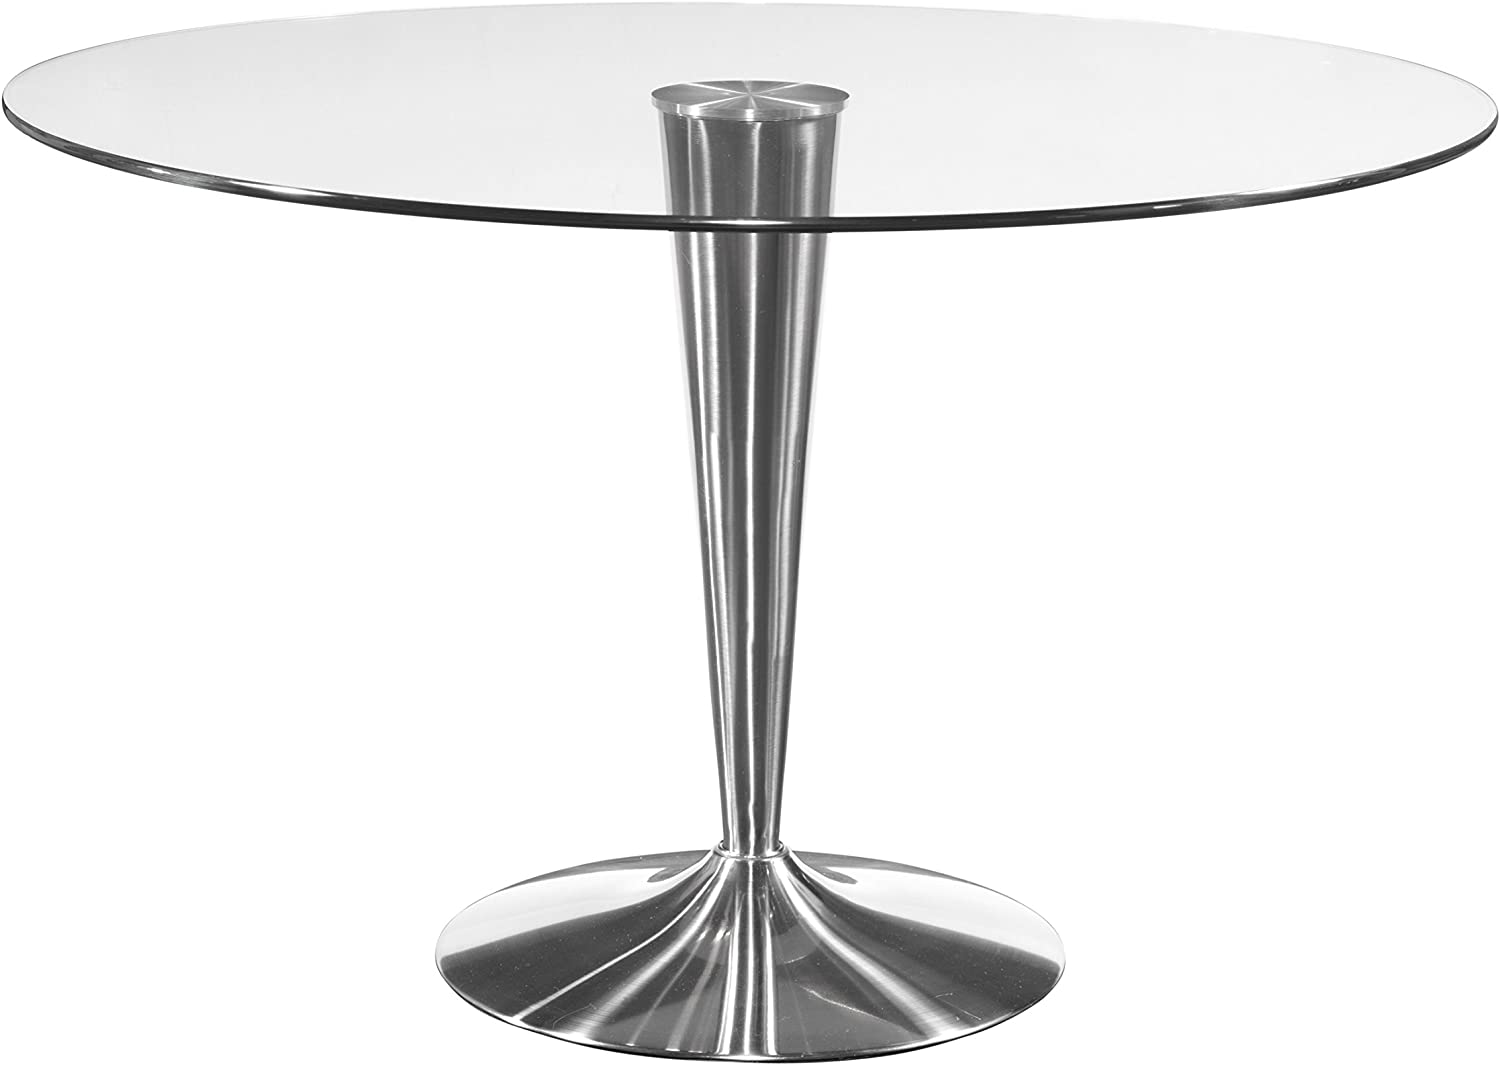 Bassett Mirror Concorde Dining Table, Chrome